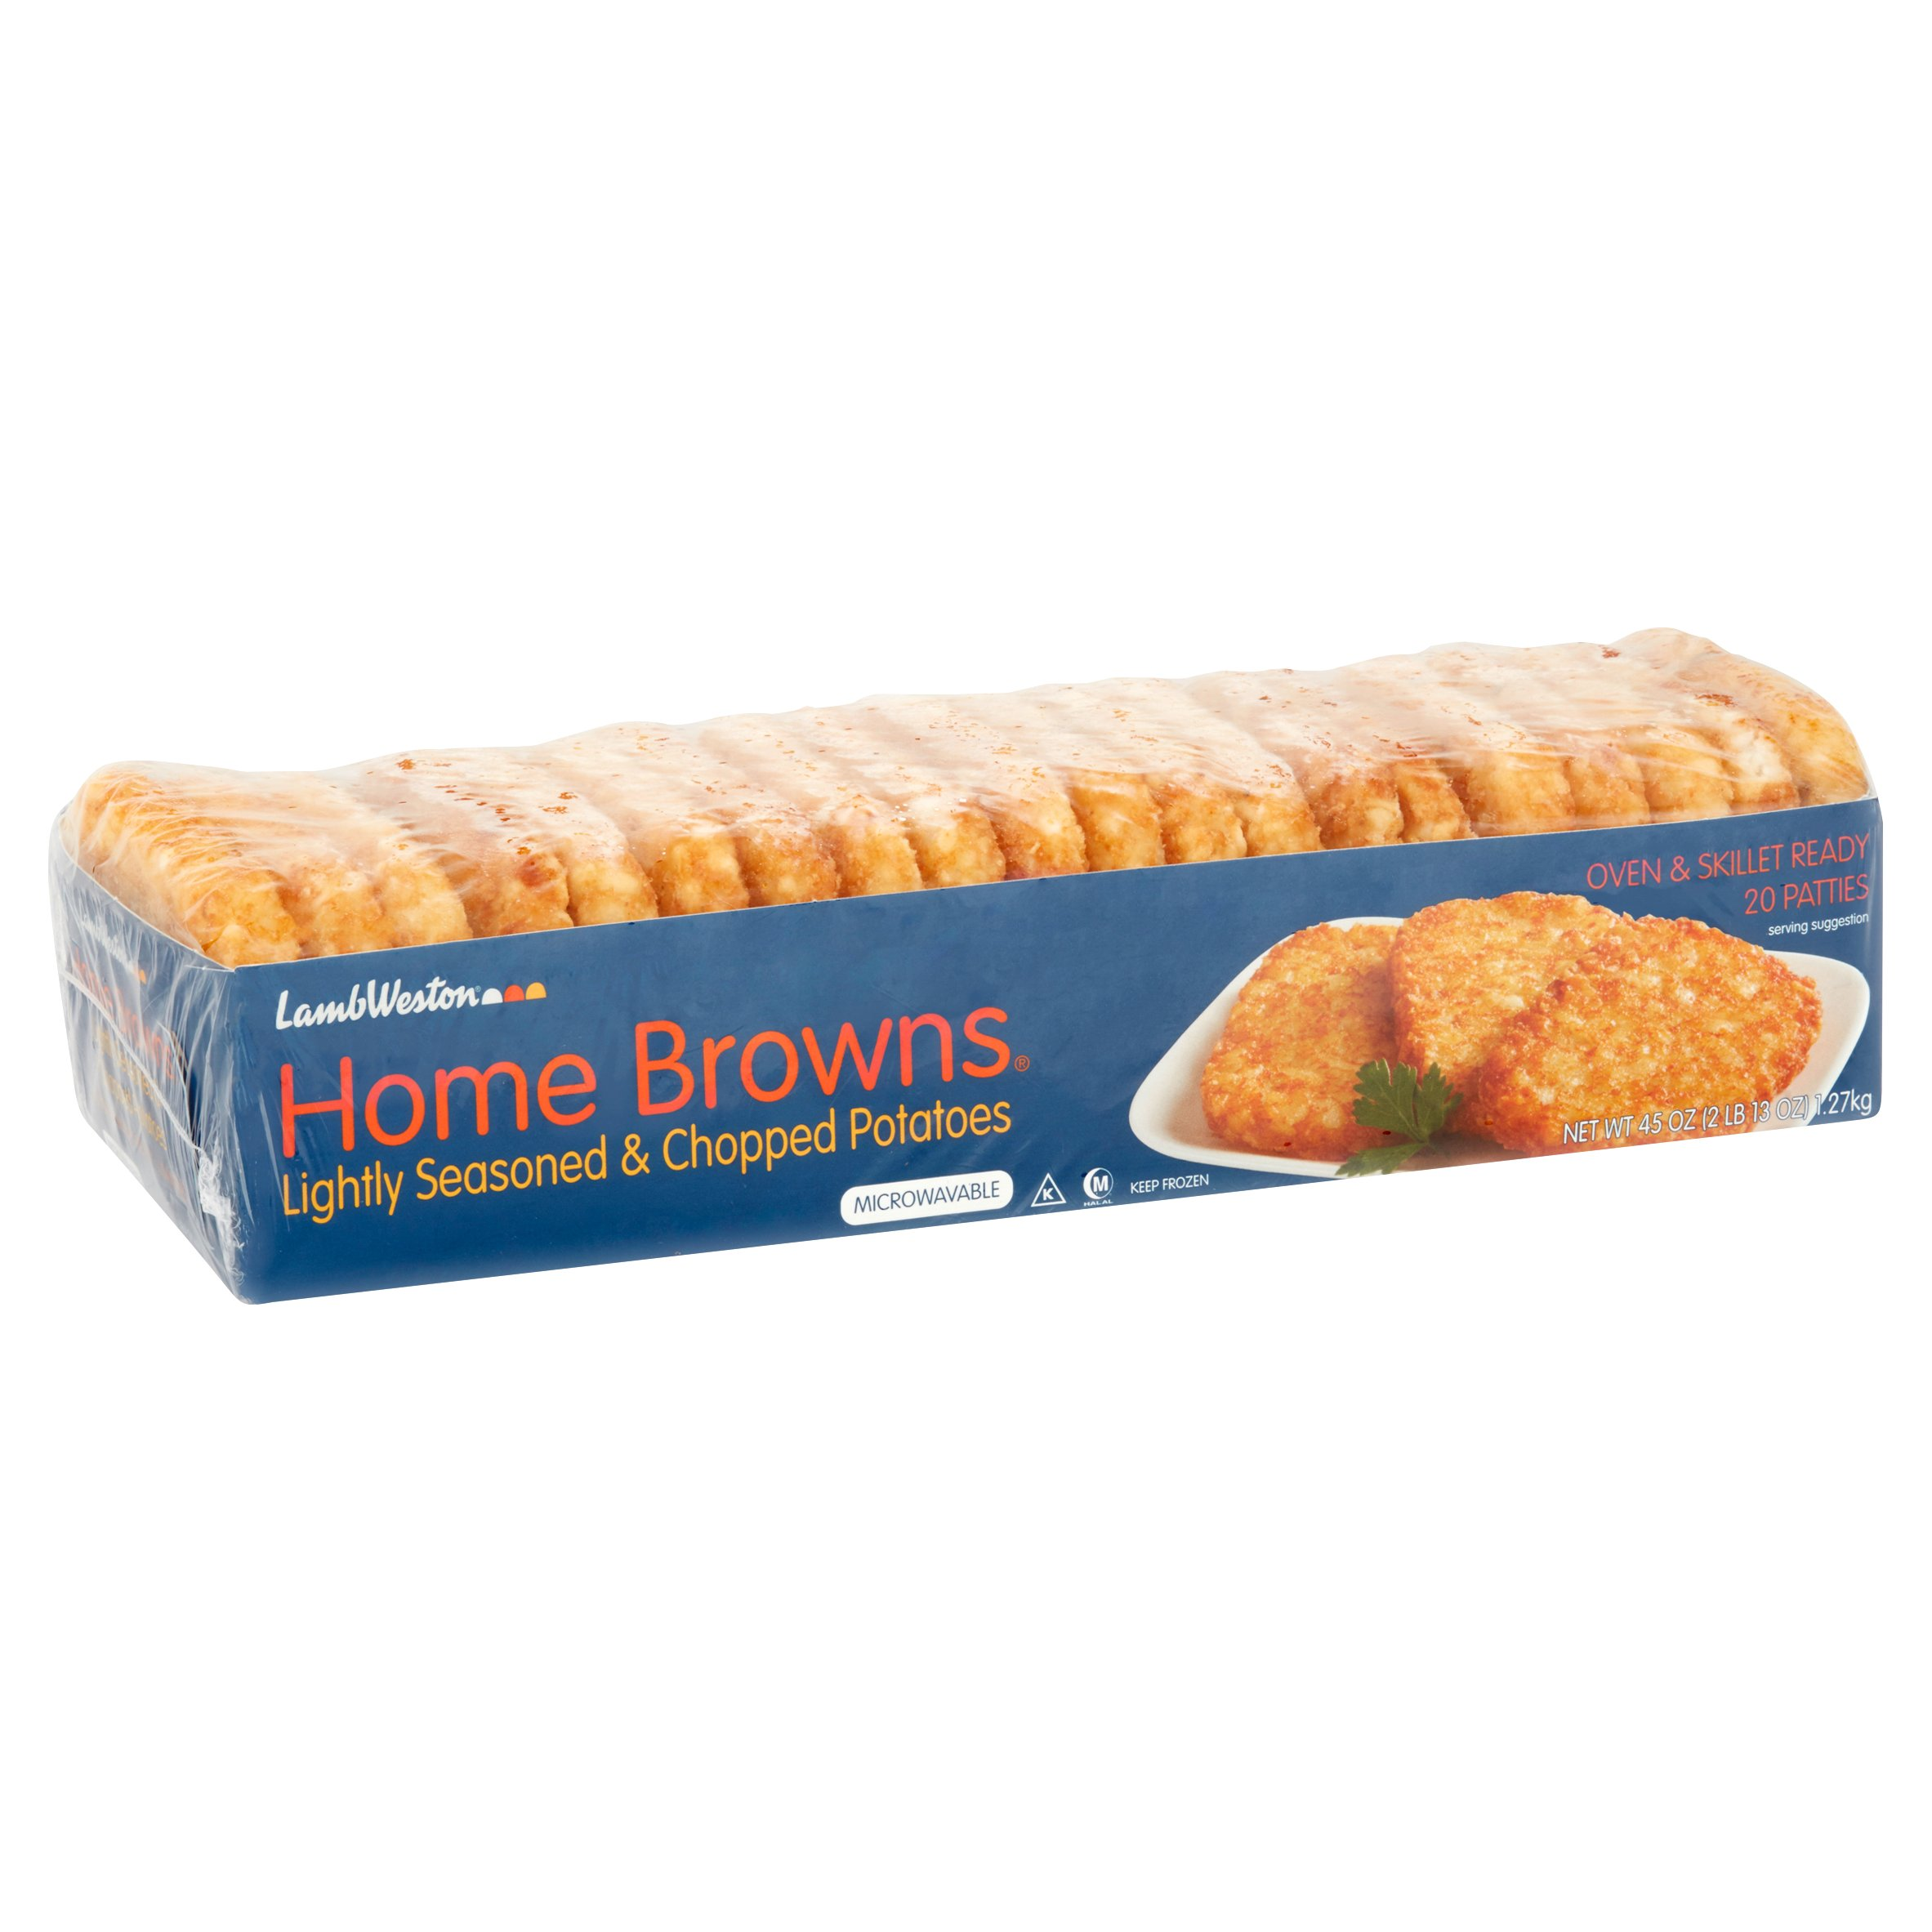 Home Browns Chopped w/Light Seasoning Potatoes, 20 ct - Walmart.com